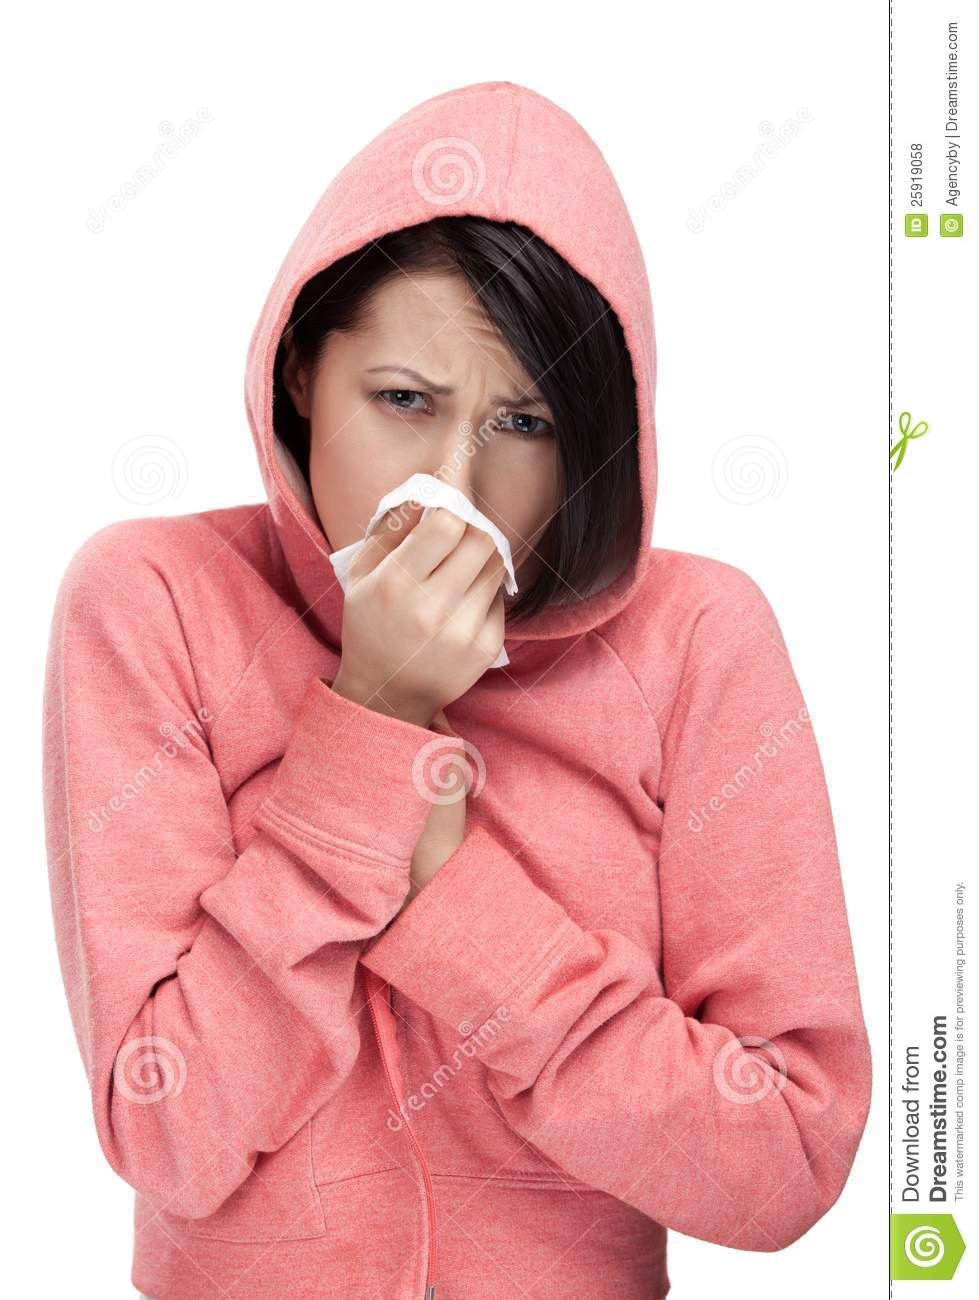 A cold woman holding wipe